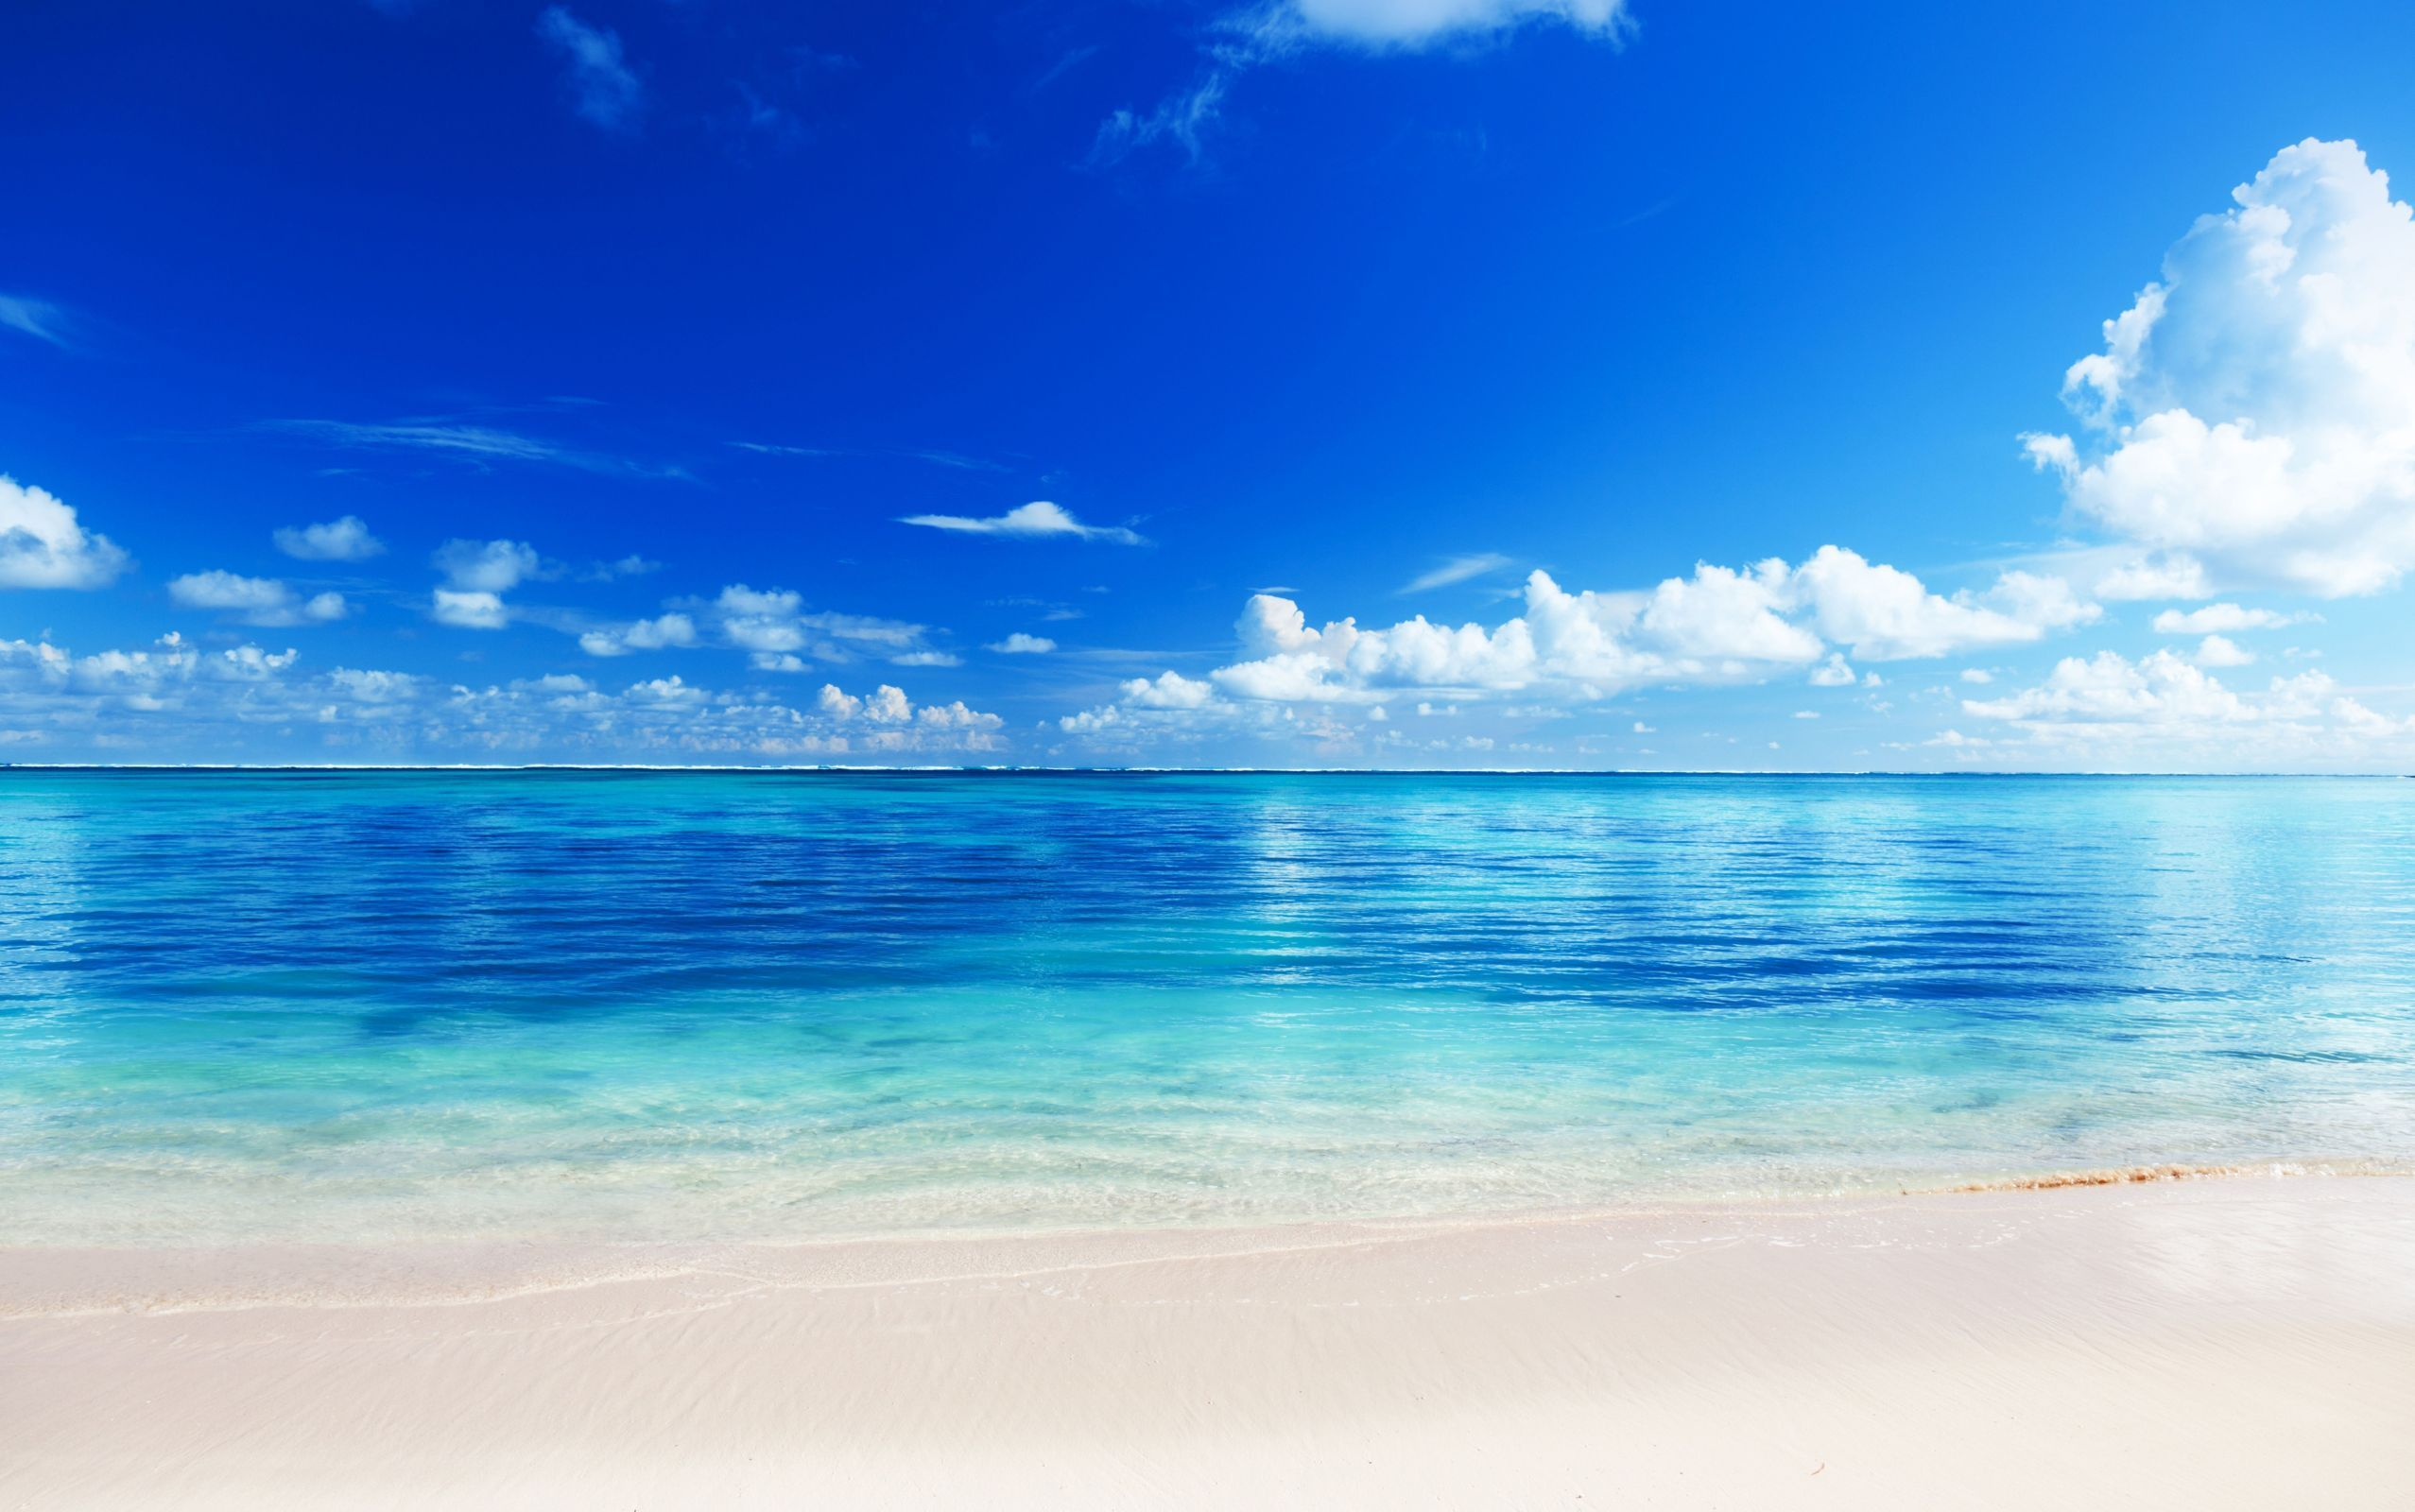 download awesome beach screensavers 21479 2555x1600 px high